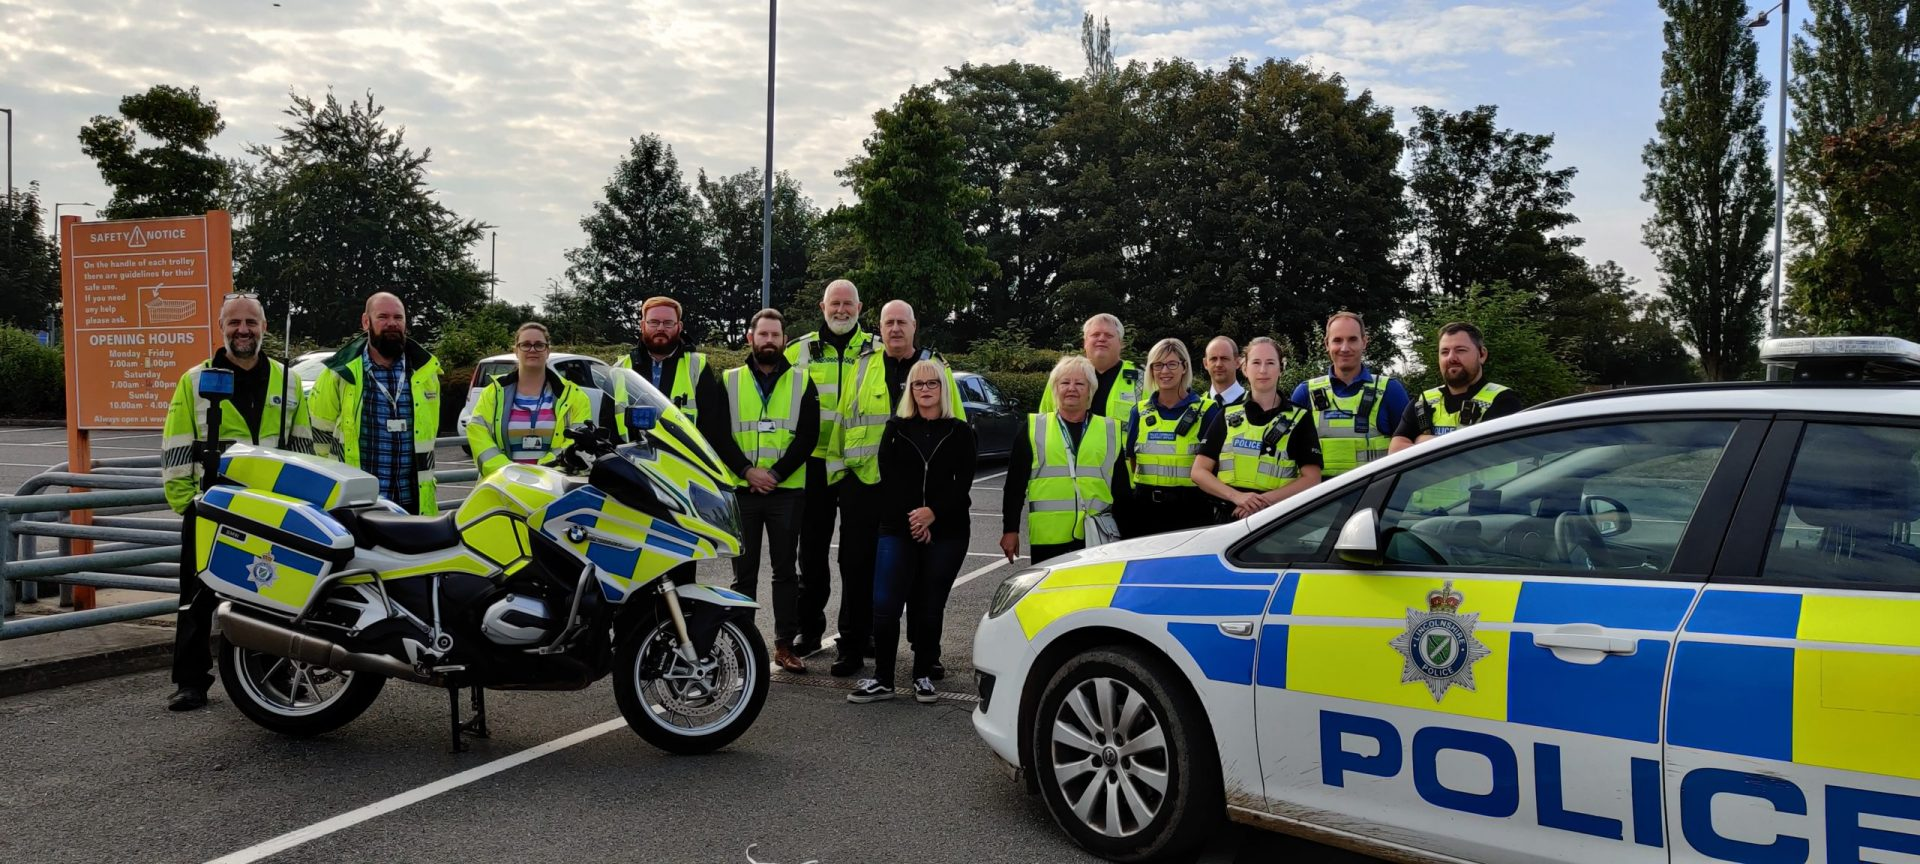 Vehicles seized as part of clampdown on illegal waste activities in Lincolnshire